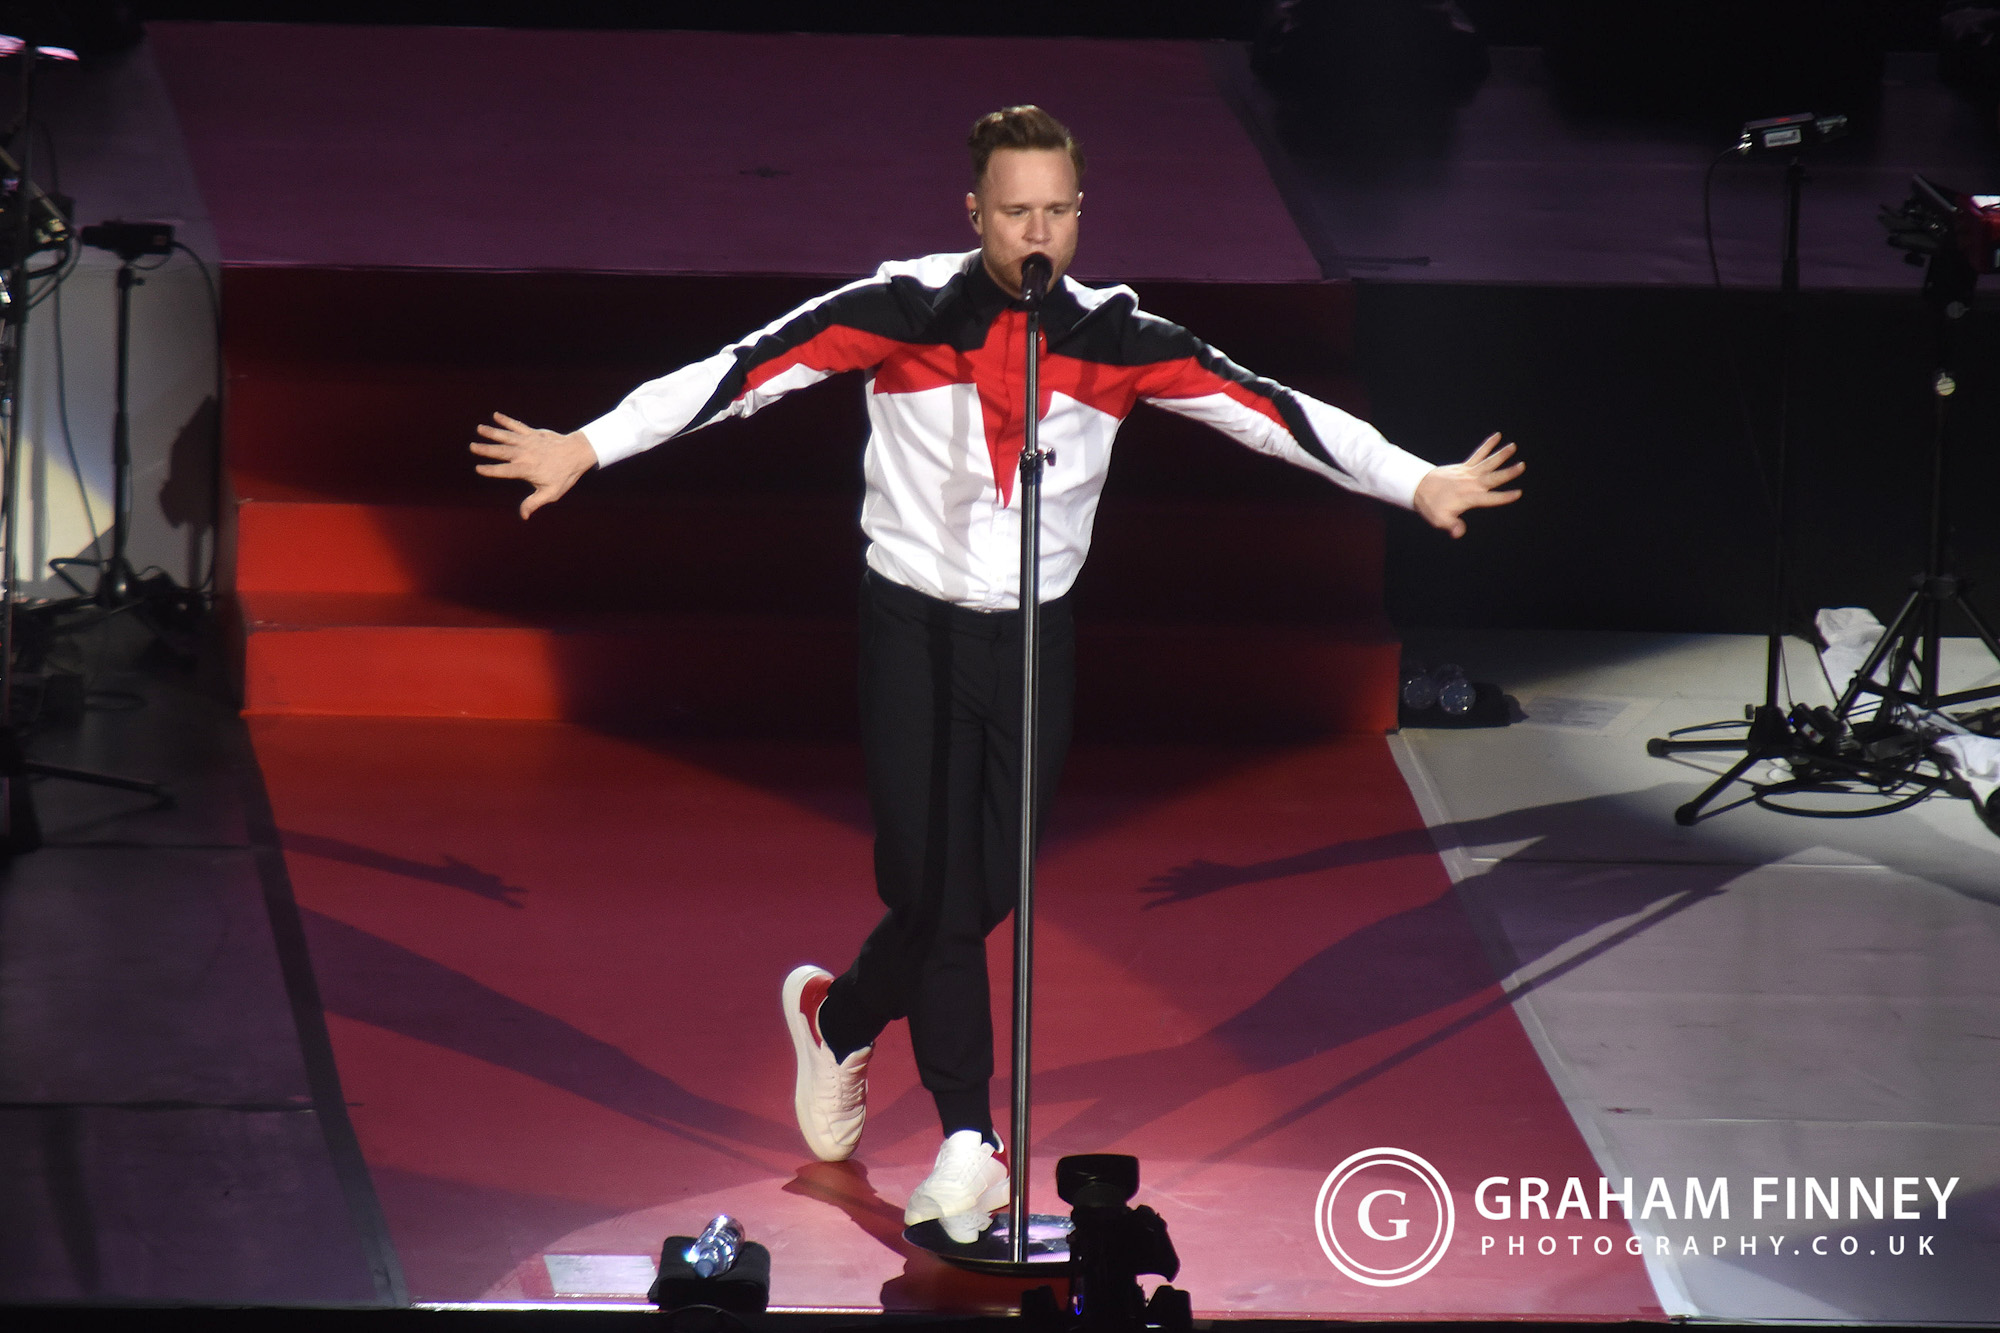 OLLY MURS AT LEEDS ARENA